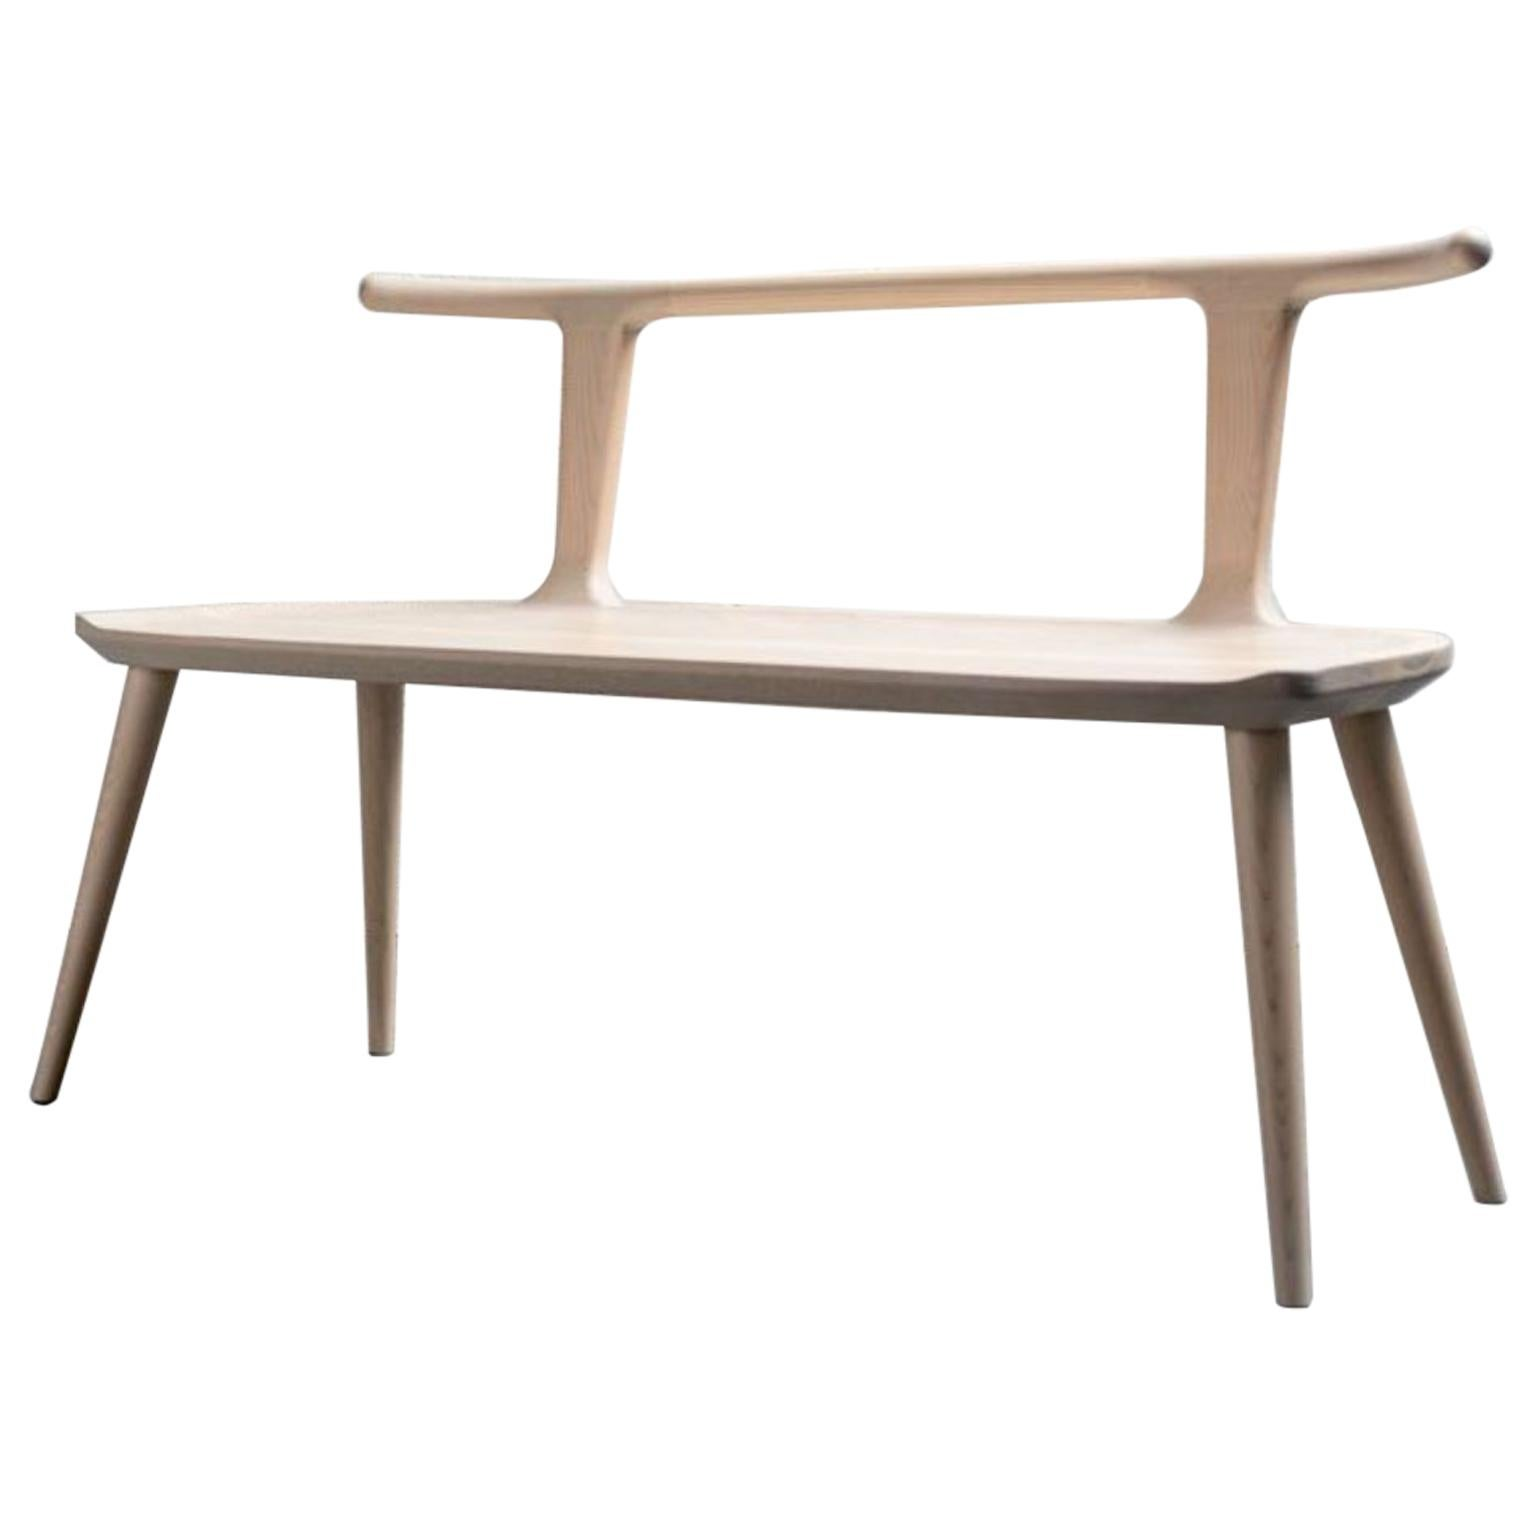 White Ash Oxbend Bench by Fernweh Woodworking